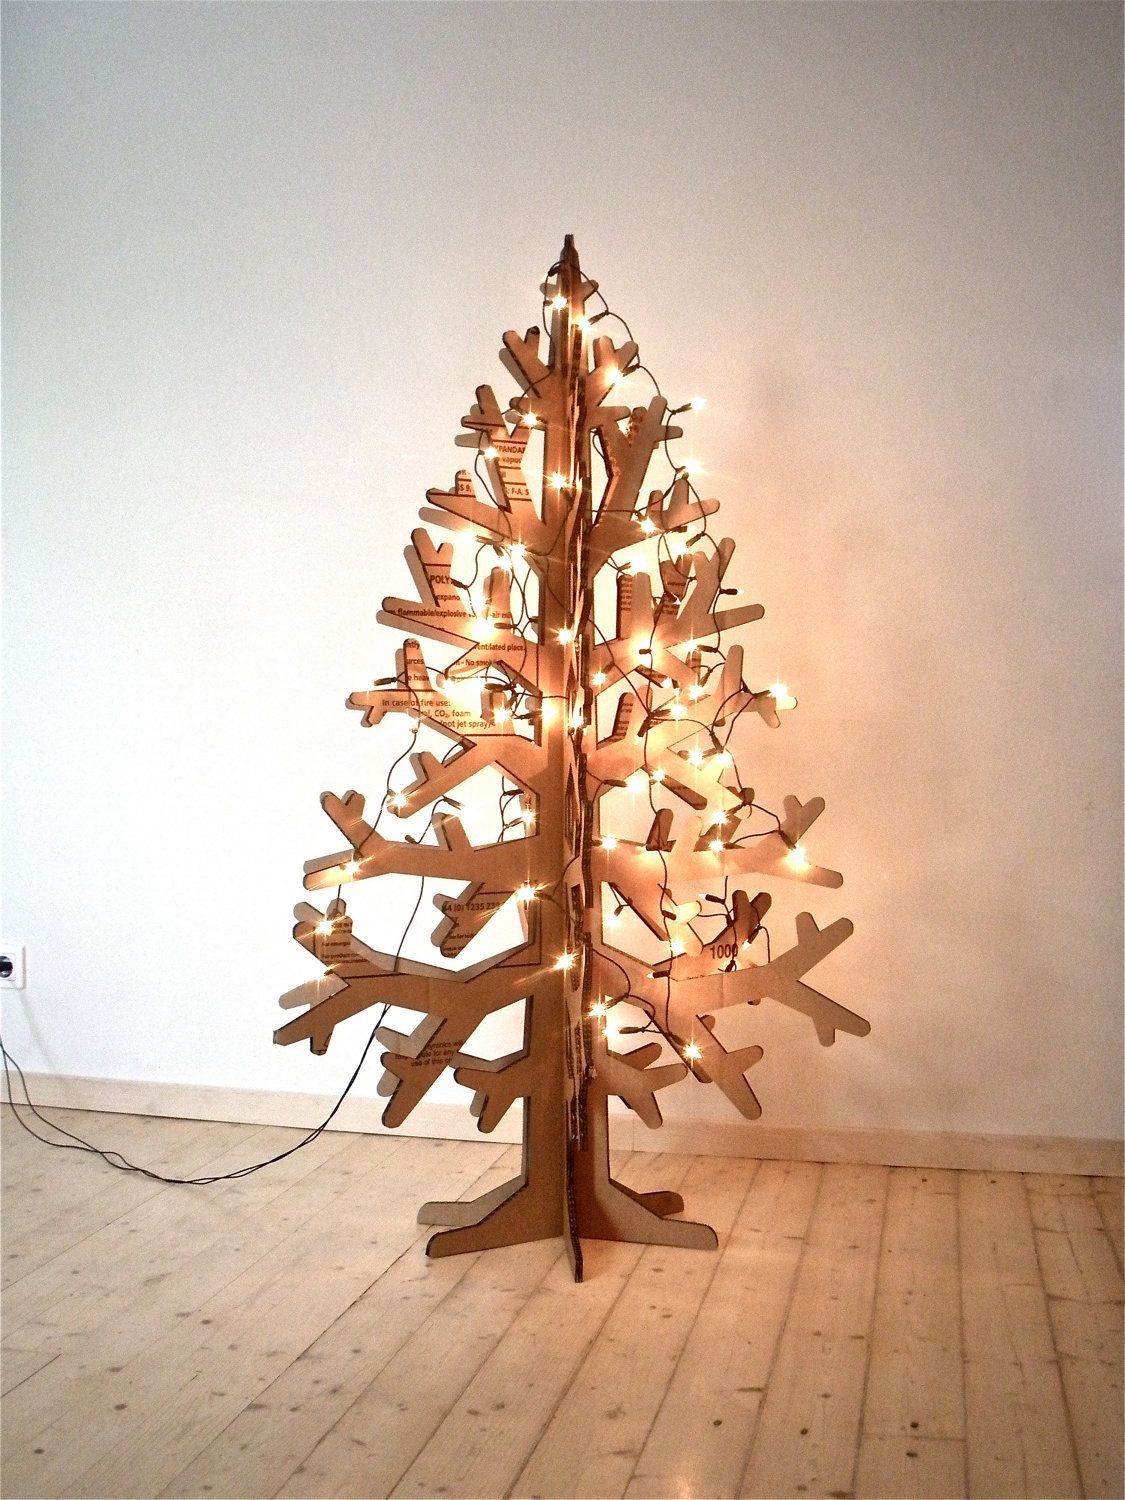 cardboard tree - Cardboard Christmas Decorations